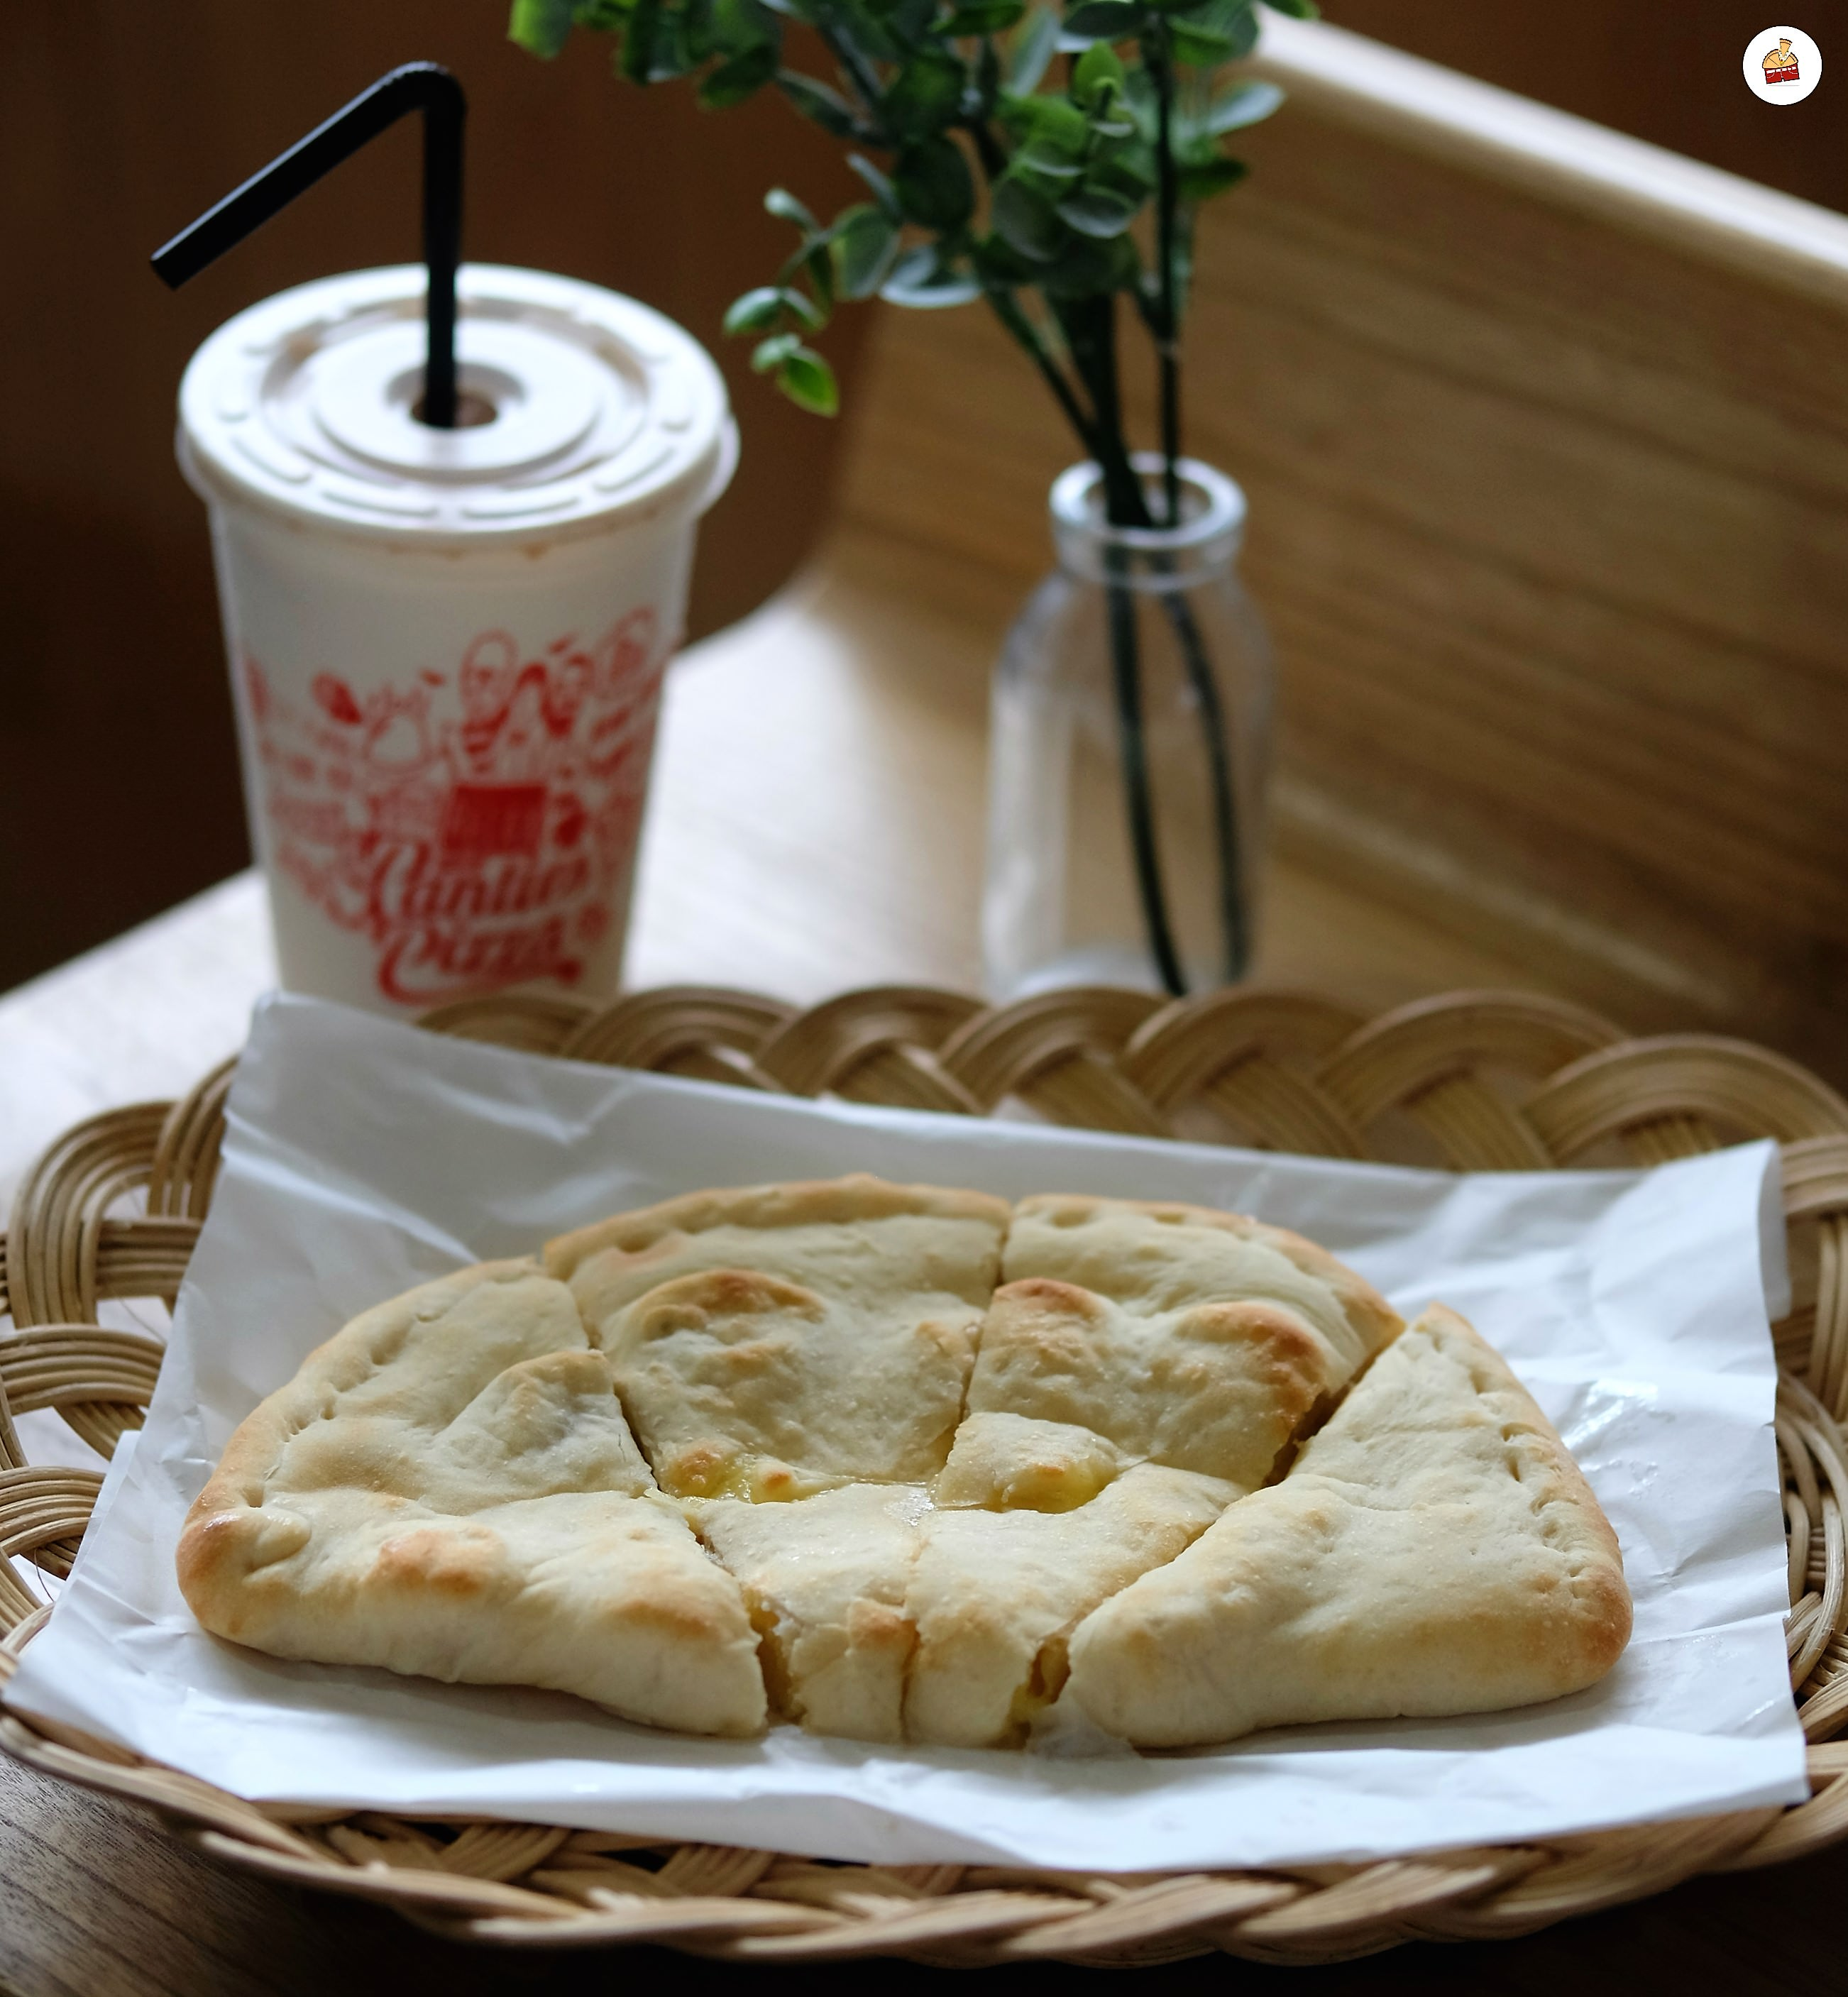 Mood Booster With 4 Slices Of Delicious Pizza Don't forget to be happy Mobile Single Slide